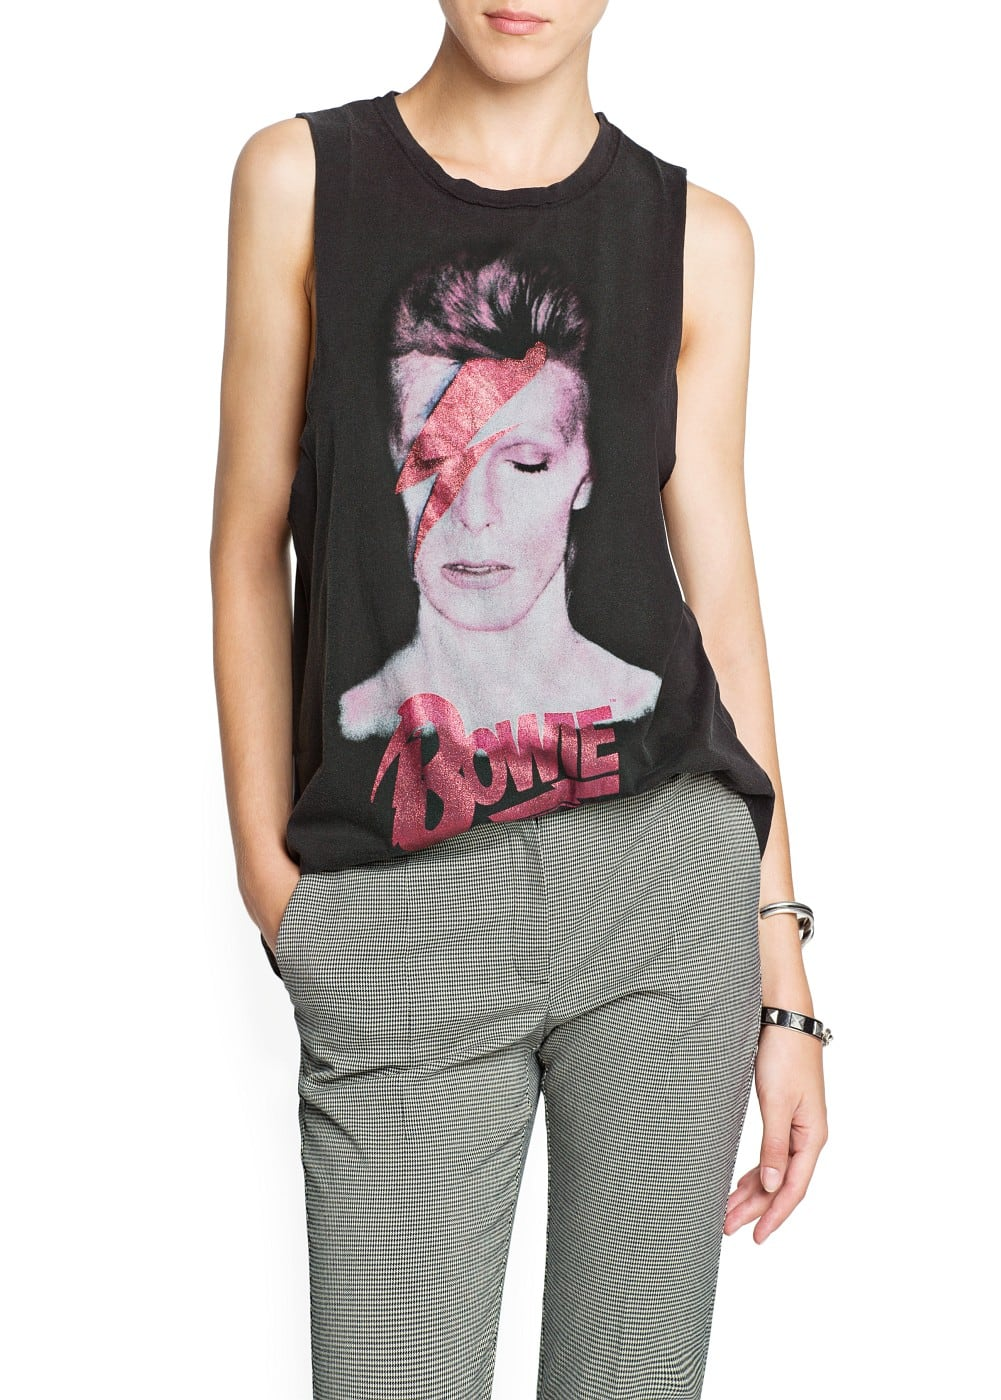 """bowie"" cotton t-shirt 